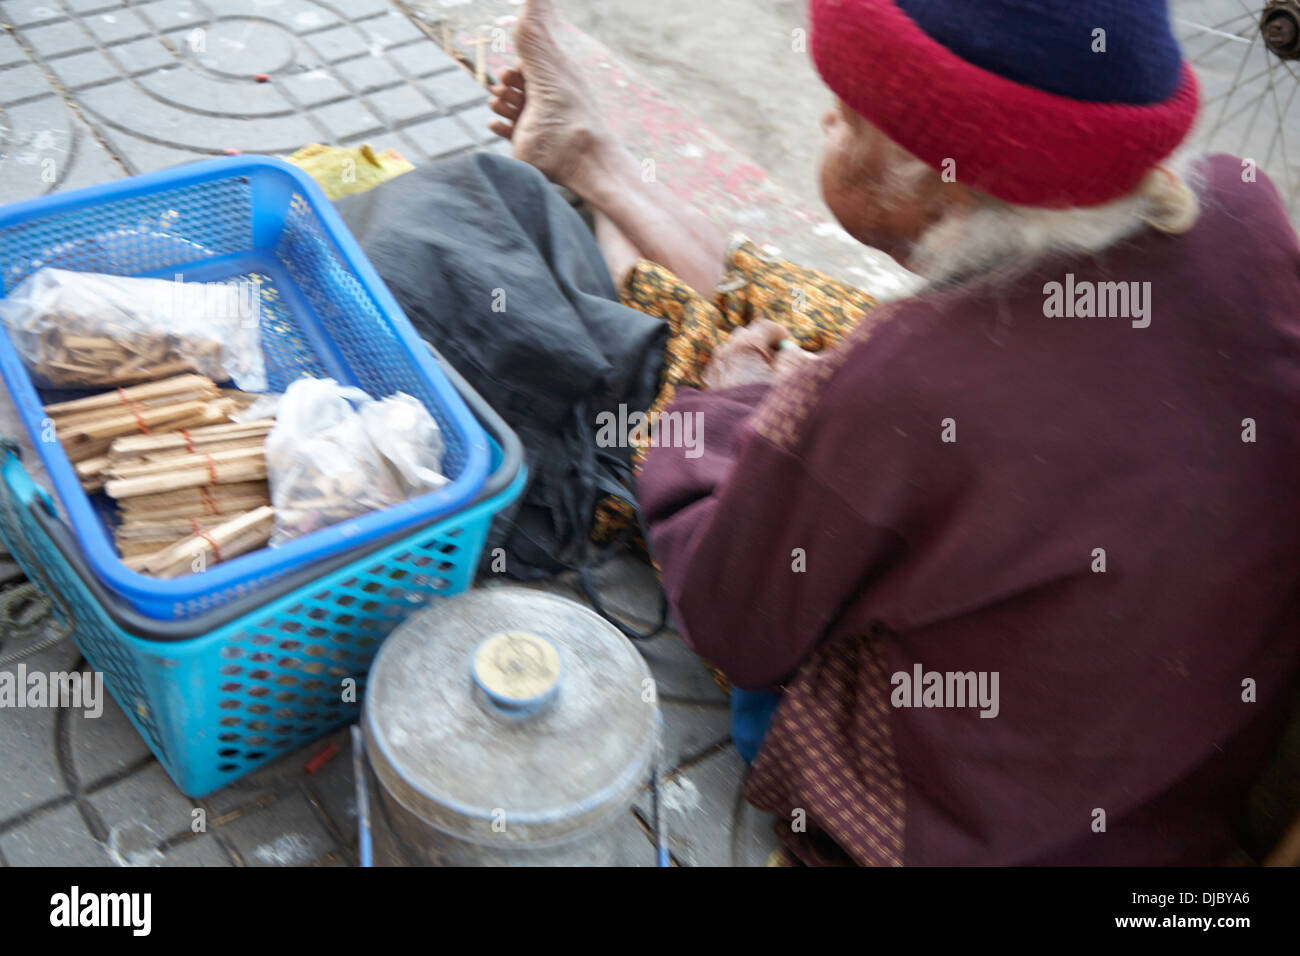 street market stall with customers in Korat, Thailand - Stock Image